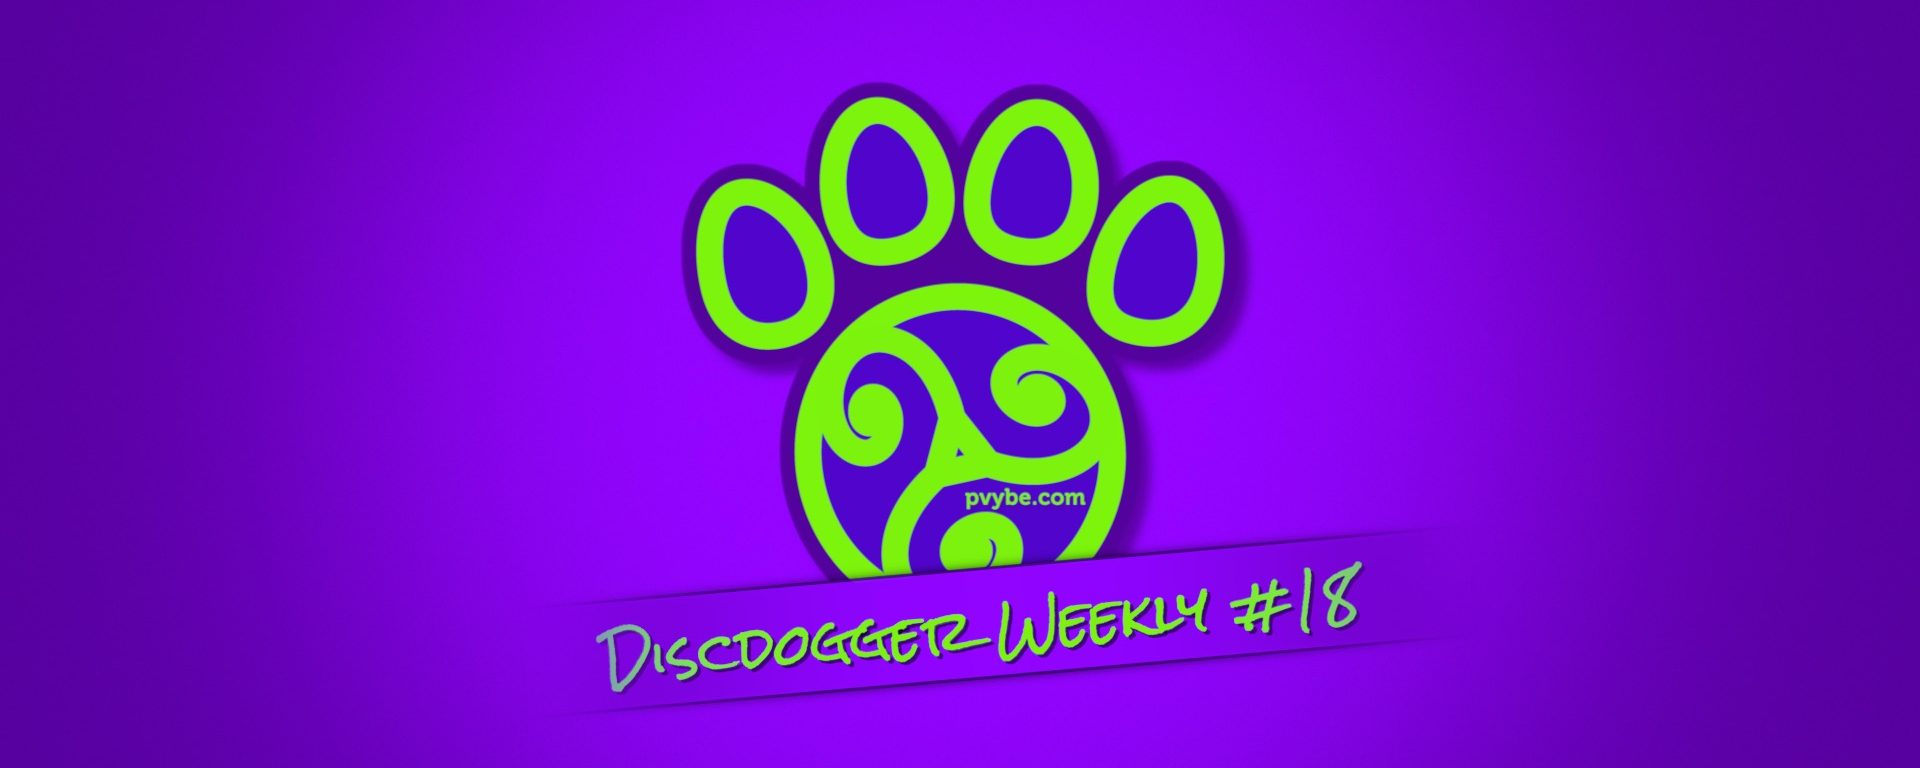 DiscDogger #18 | Disc Throwing & the Shape of Things